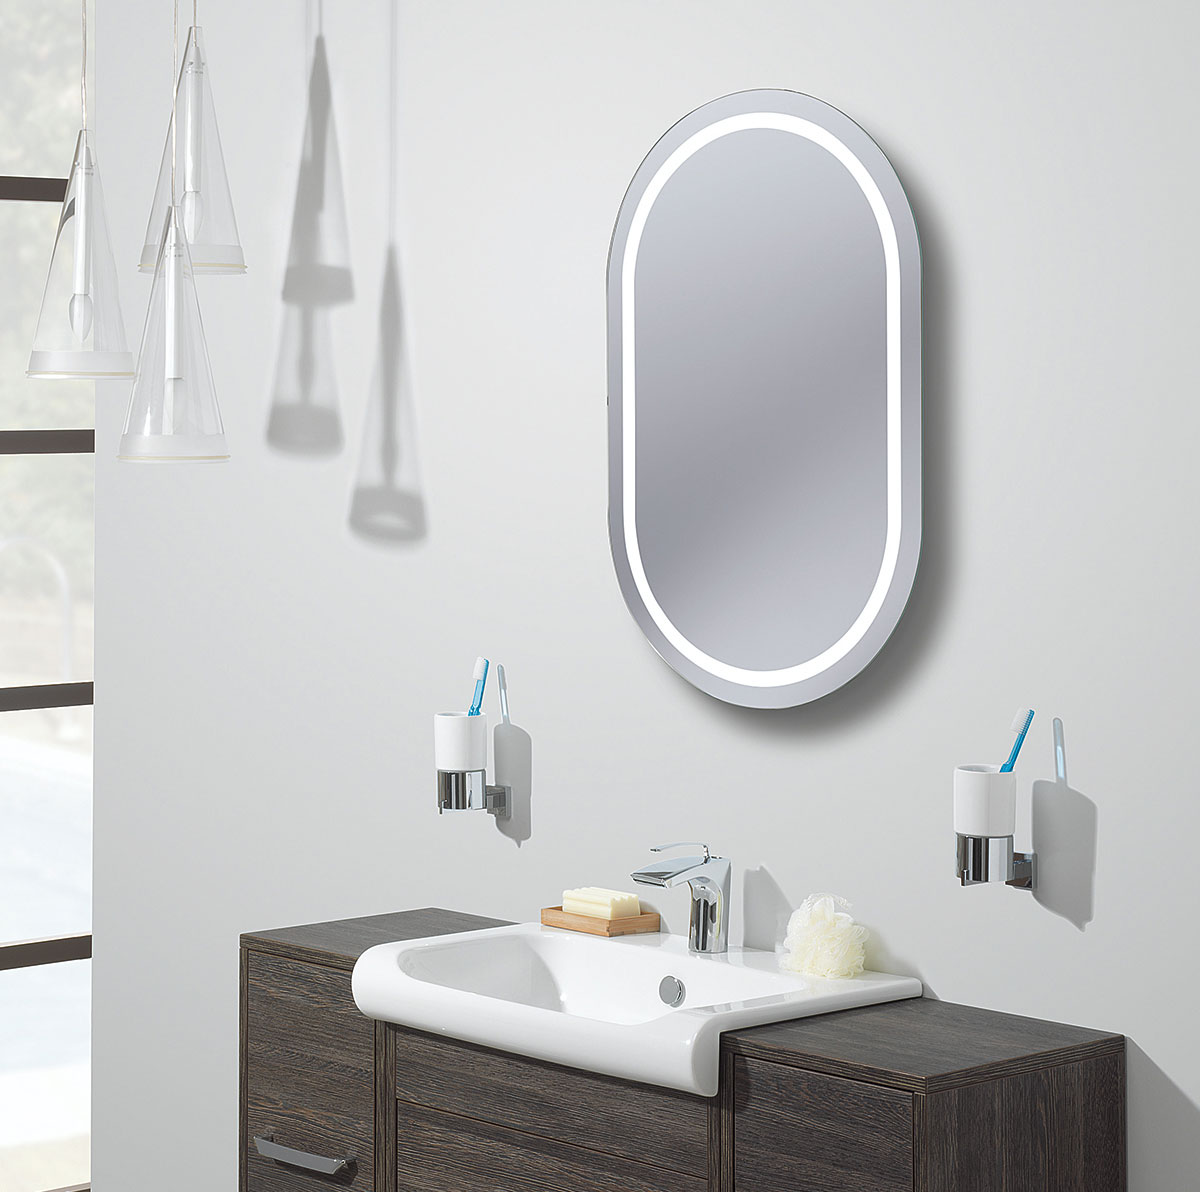 Mirrors by range | Luxury bathrooms UK, Crosswater Holdings